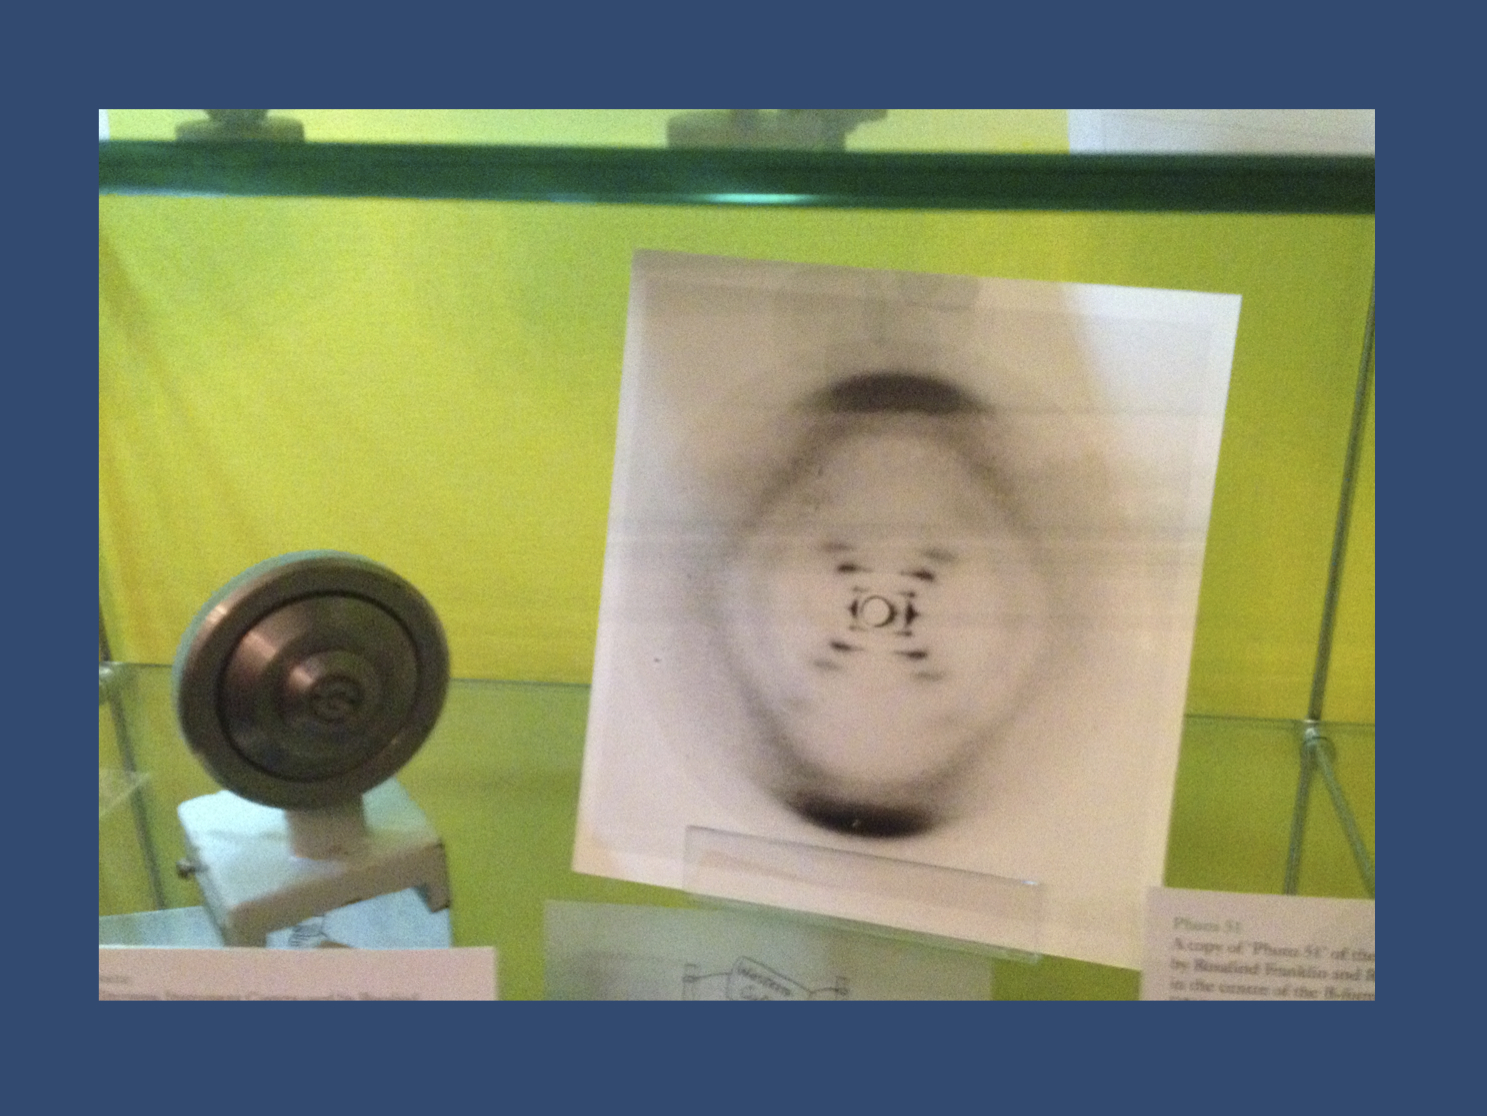 The initial X-ray of DNA by Rosalind Franklin, which led to the suggestion that DNA might actually be a double helix (photo taken at King's College in 2012). In contrast to her peers Watson, Crick, and Wilkins, Franklin did not receive a Nobel Prize. While many factors may have contributed to this questionable decision, the fact that Franklin was possessive of data and not a good communicator might have contributed to this. This year's SpotOn is the first time that we will attend an event on online science communication, and we are excited to get new ideas on how we can improve our way of talking to each other through social media and other online sources on a peer-to-peer basis in science.